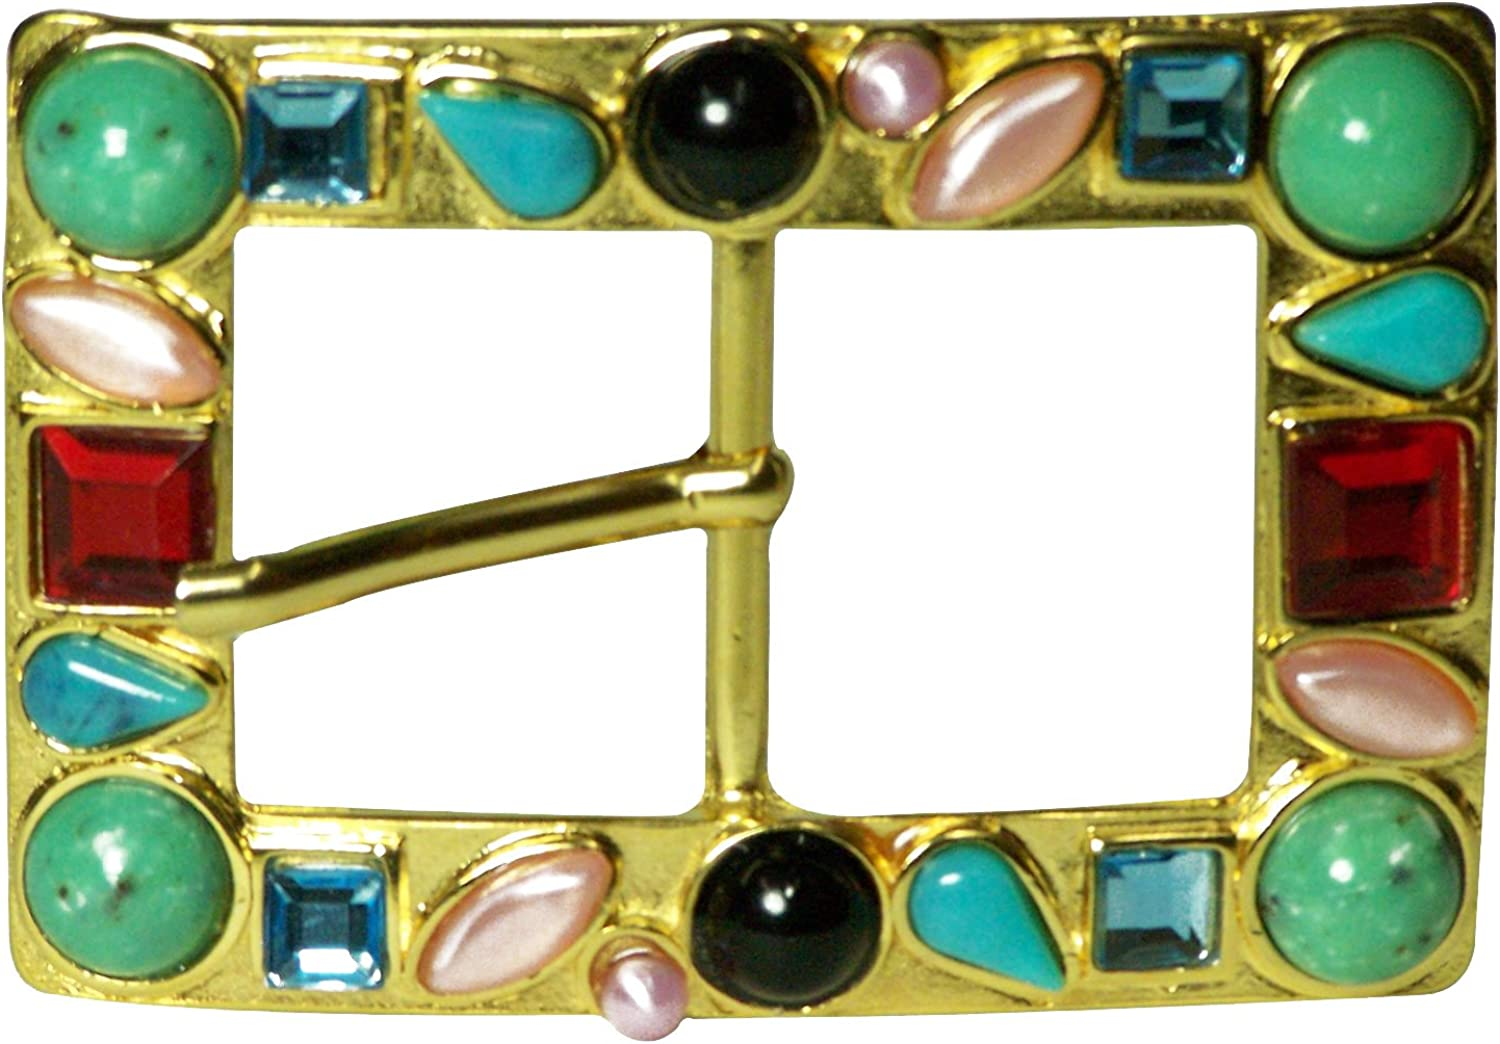 FRONHOFER   Women's buckle   gold with colorful stones   Glamgoldus belt buckle, One Size One Size, color gold